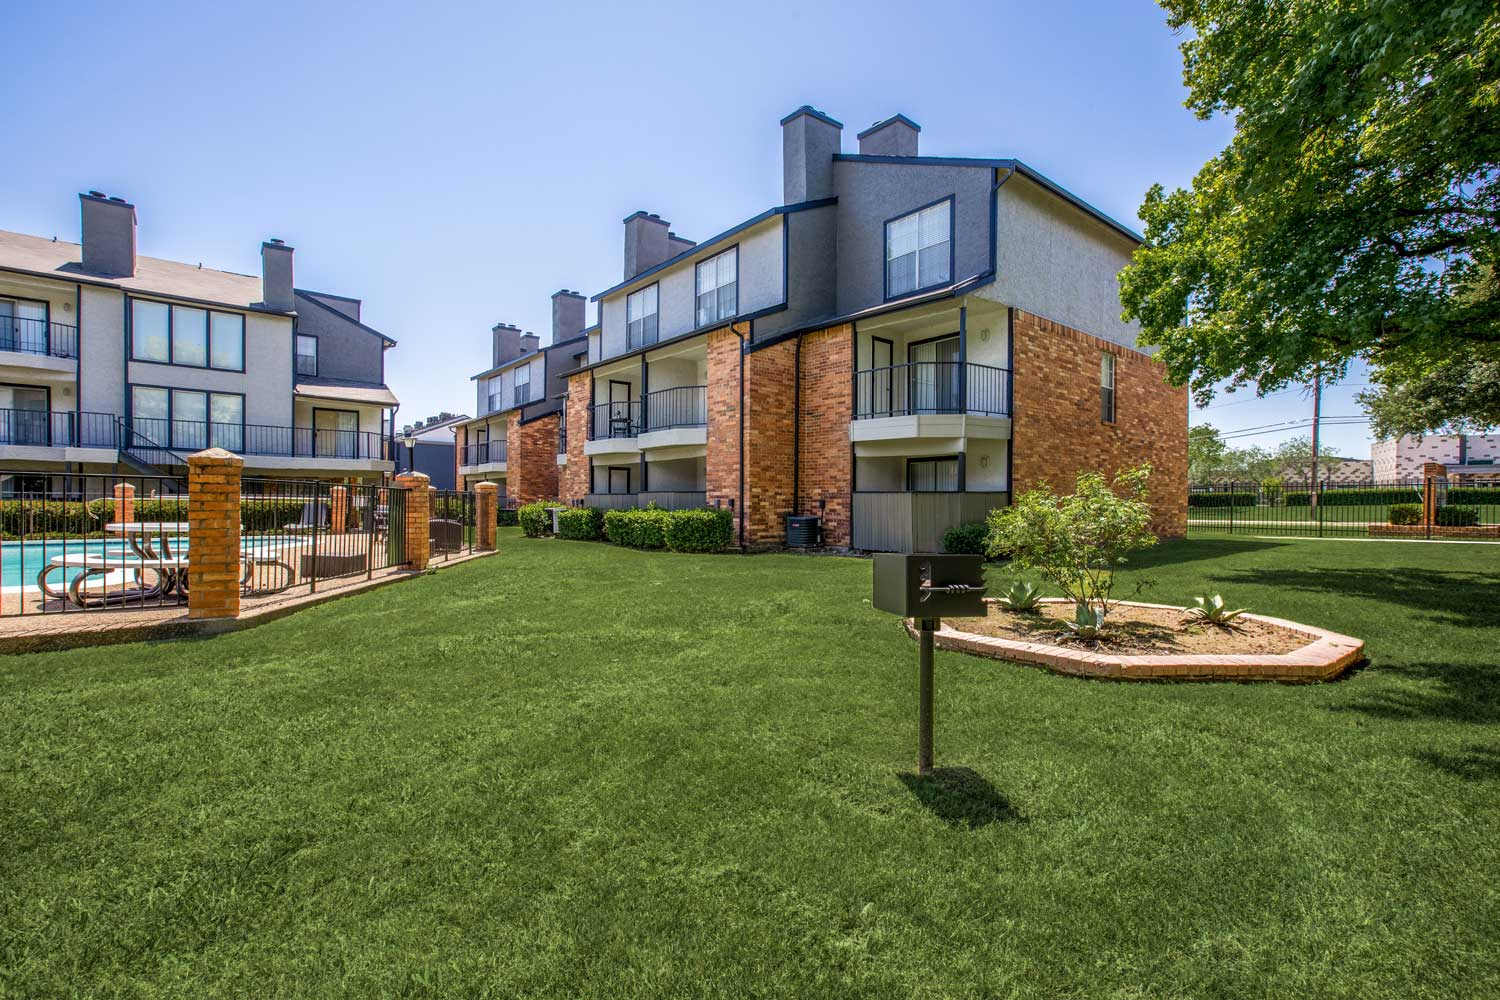 Lush Landscaping at Cadence Apartments in Dallas, Texas